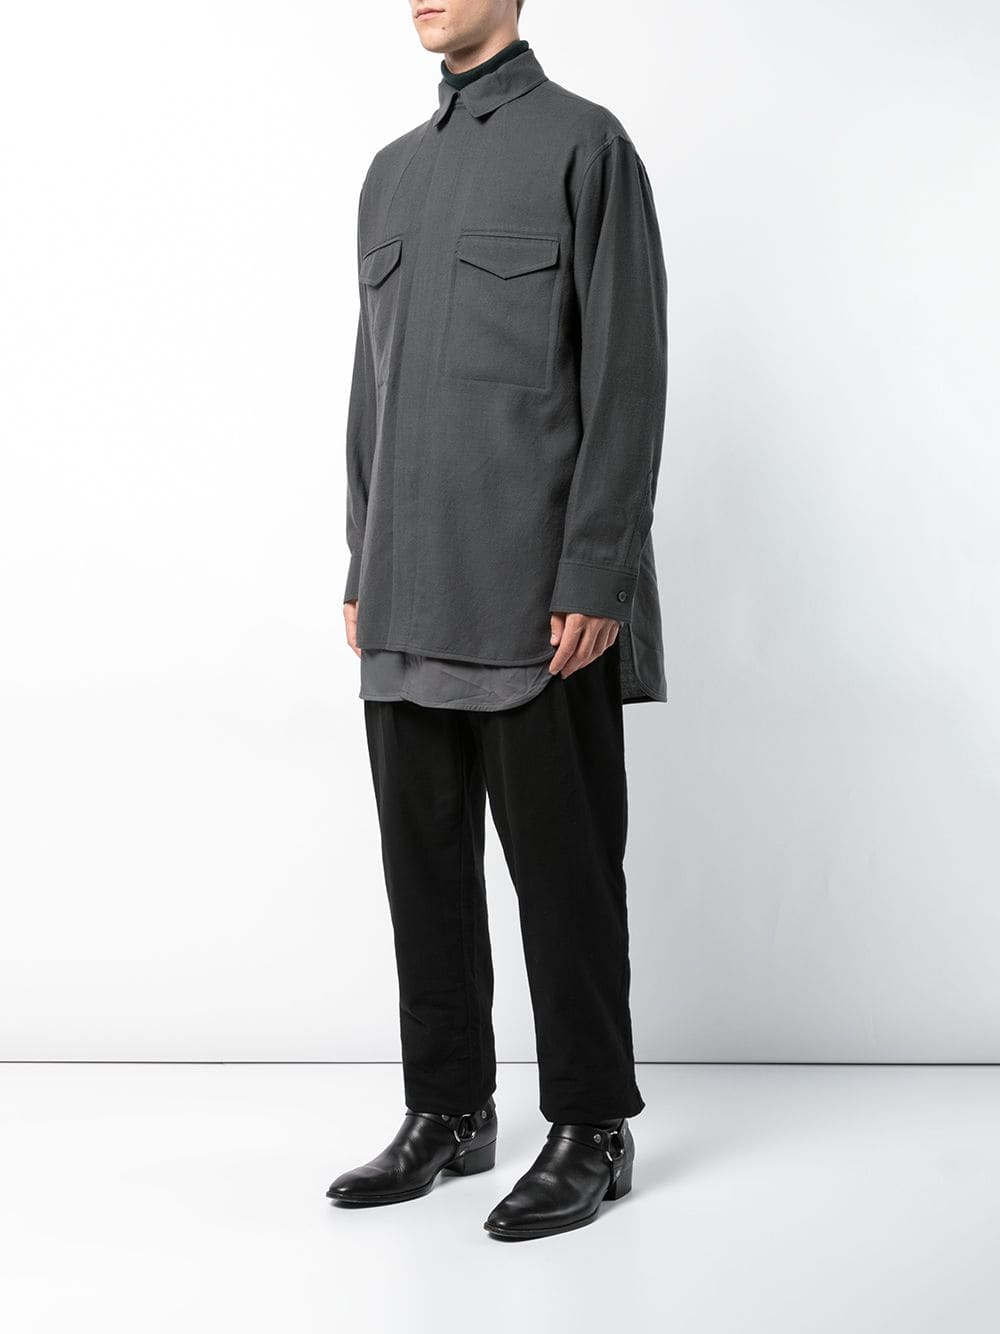 HAIDER ACKERMANN MEN DOUBLE LAYER SHIRT 184-3606-435-070